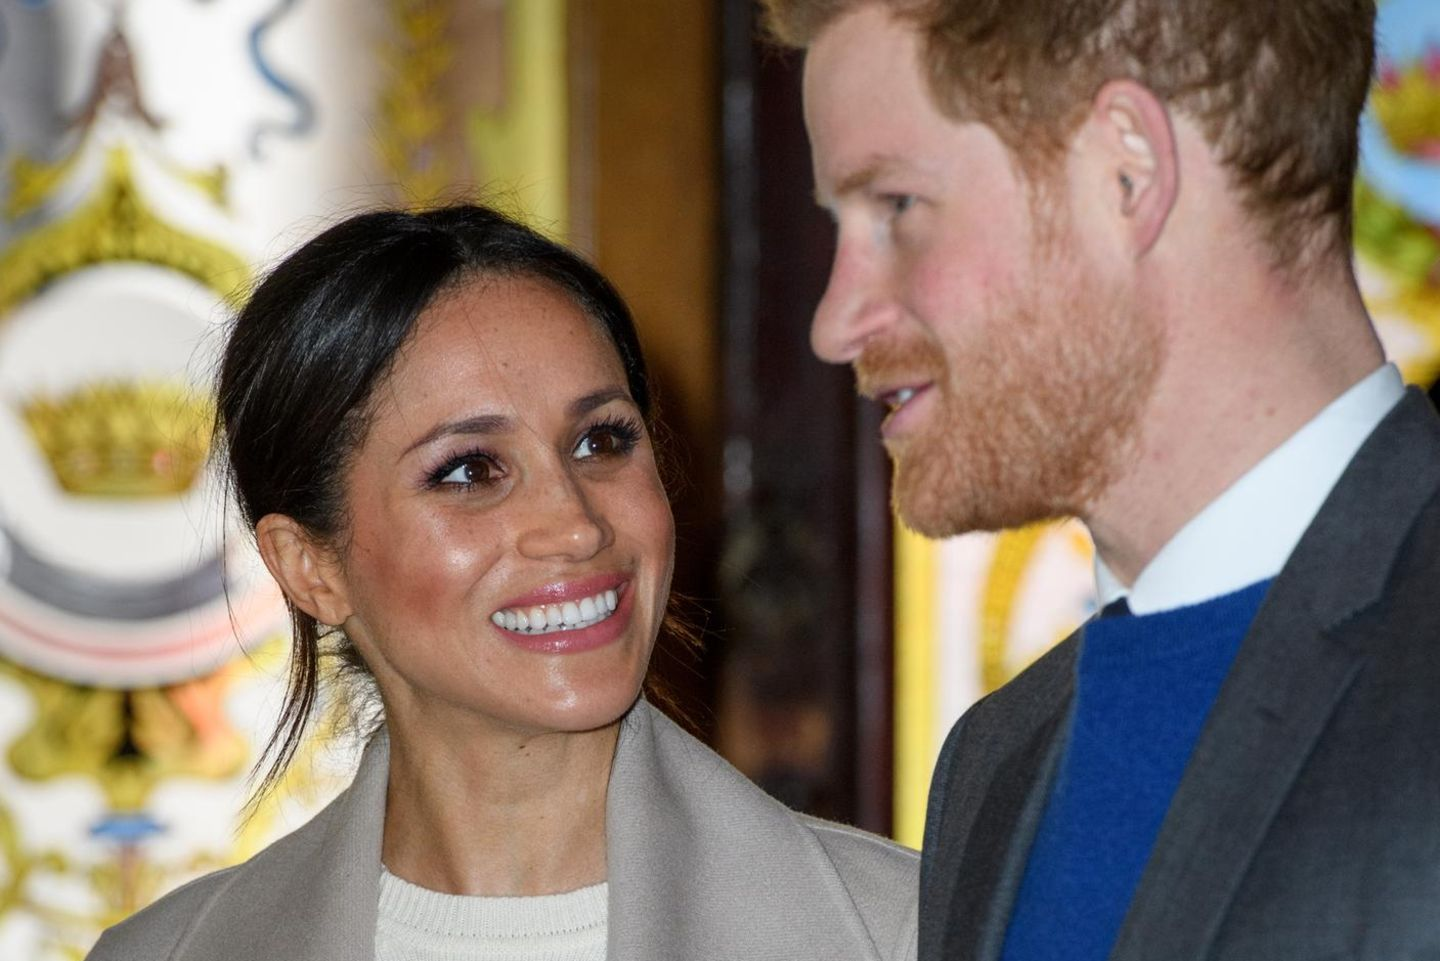 Meghan Markle und Prinz Harry heiraten am 19. Mai in Windsor Castle